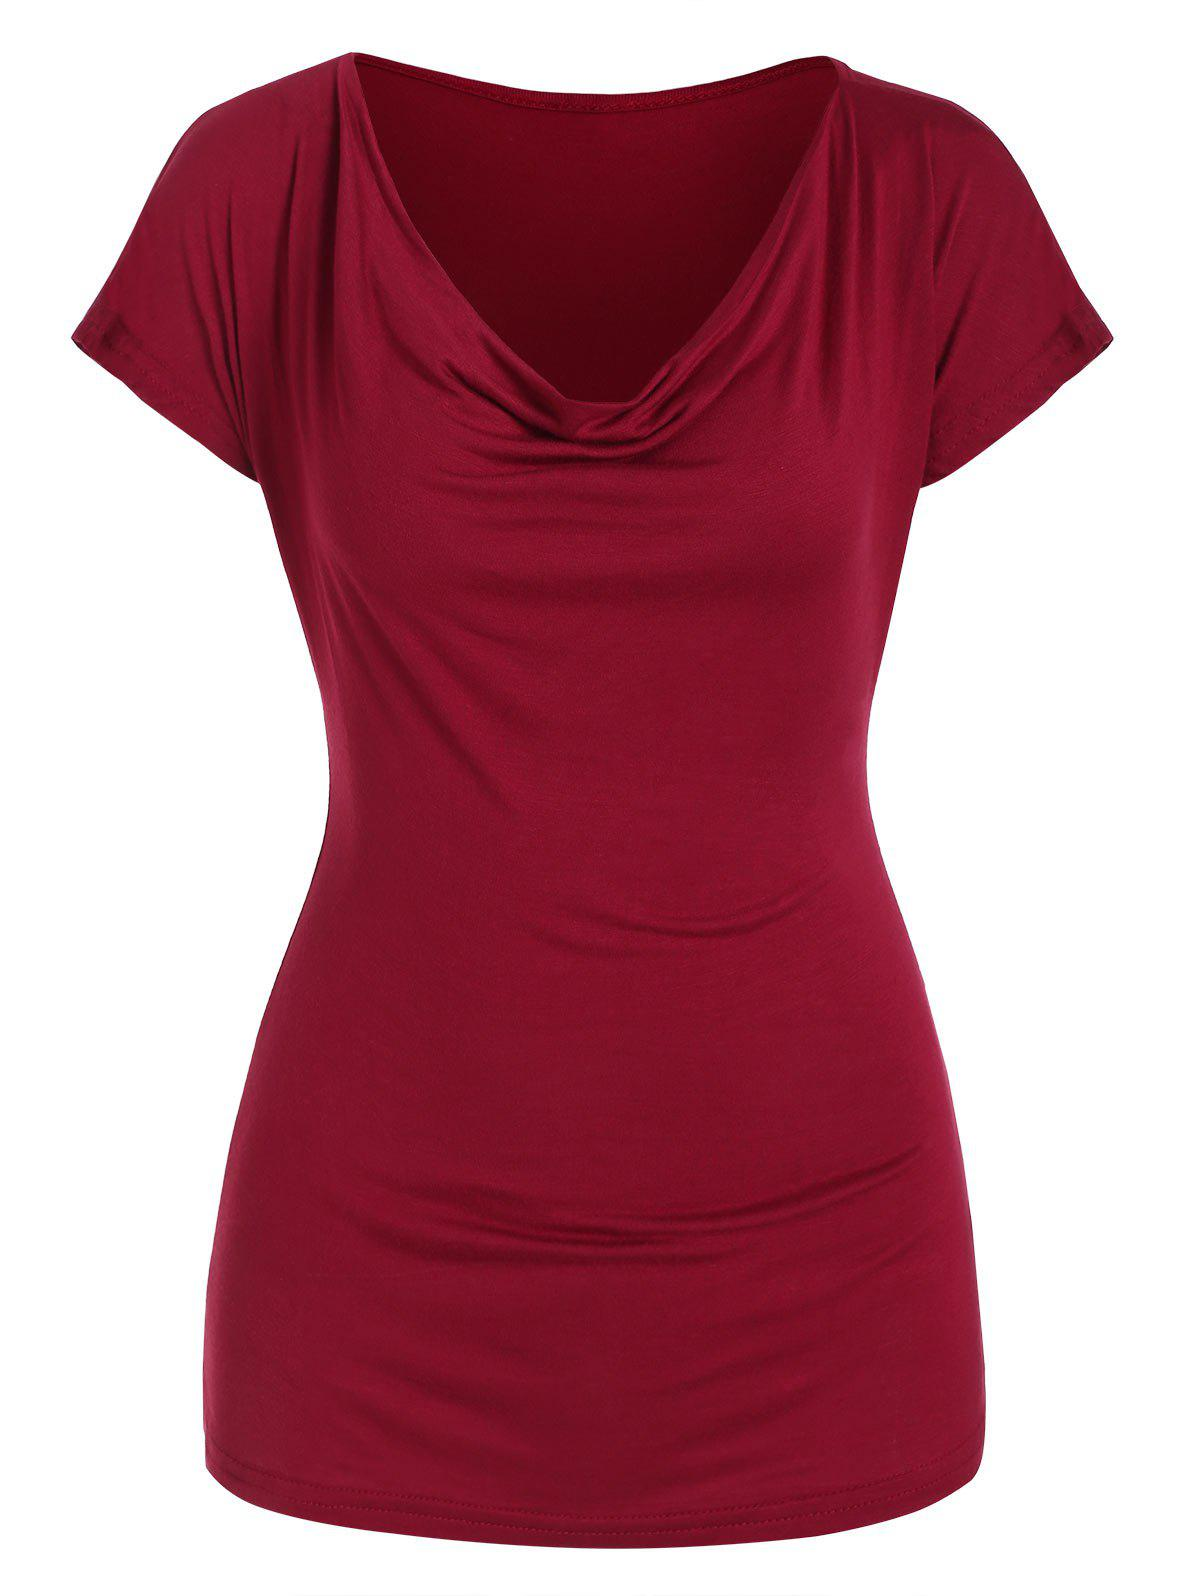 Cowl Front Scoop Neck Solid Tee - RED WINE XL